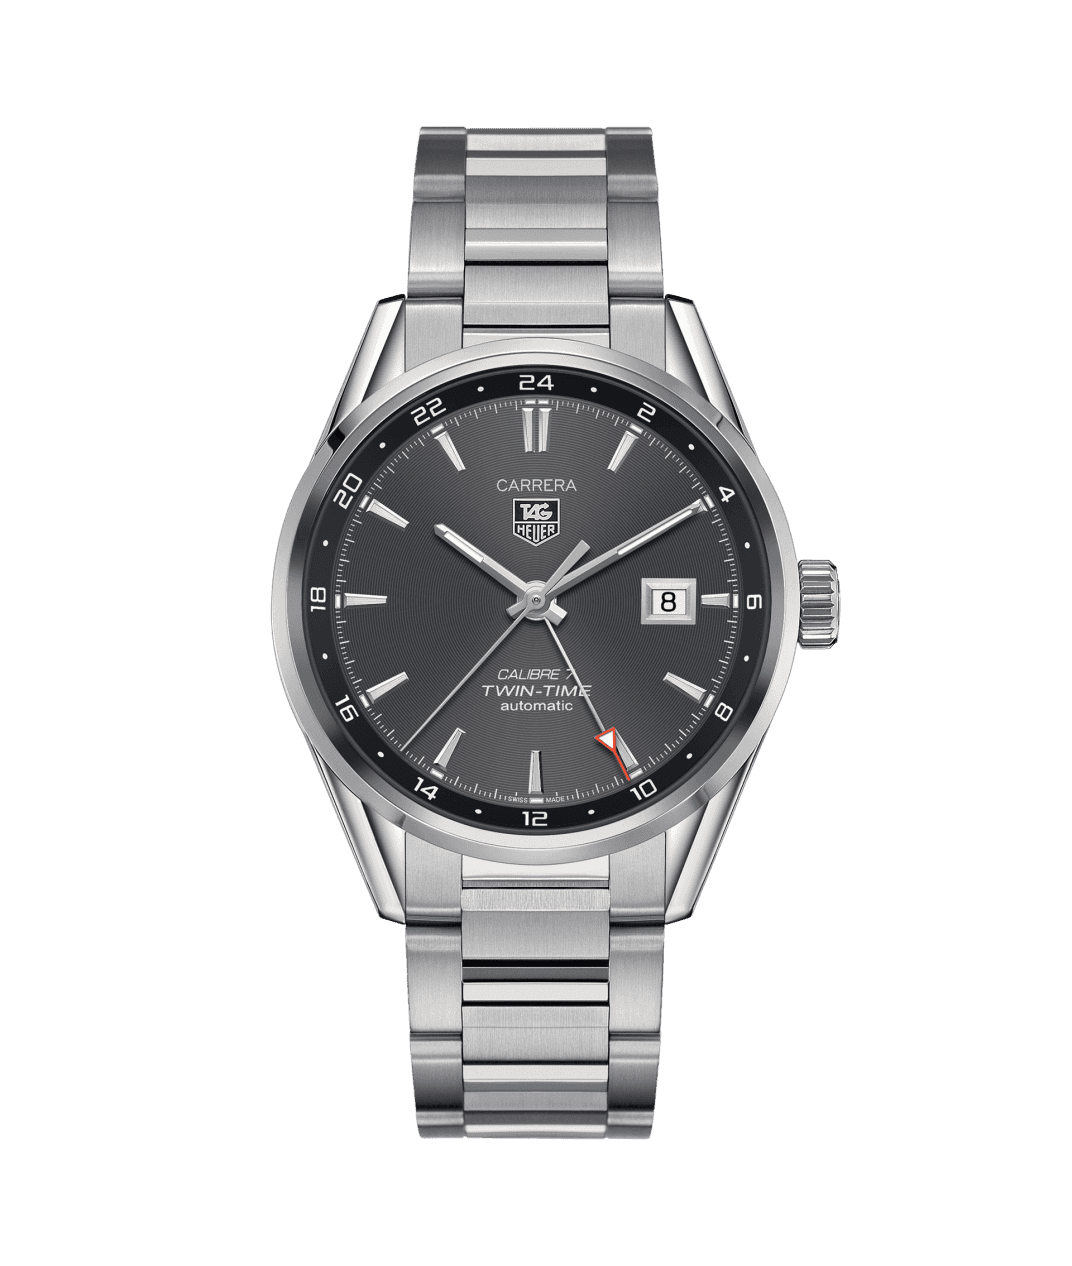 Tag-Heuer-Montre-Carrera-Calibre-7-Twin-Time-Hall-of-Time-WAR2012-BA0723